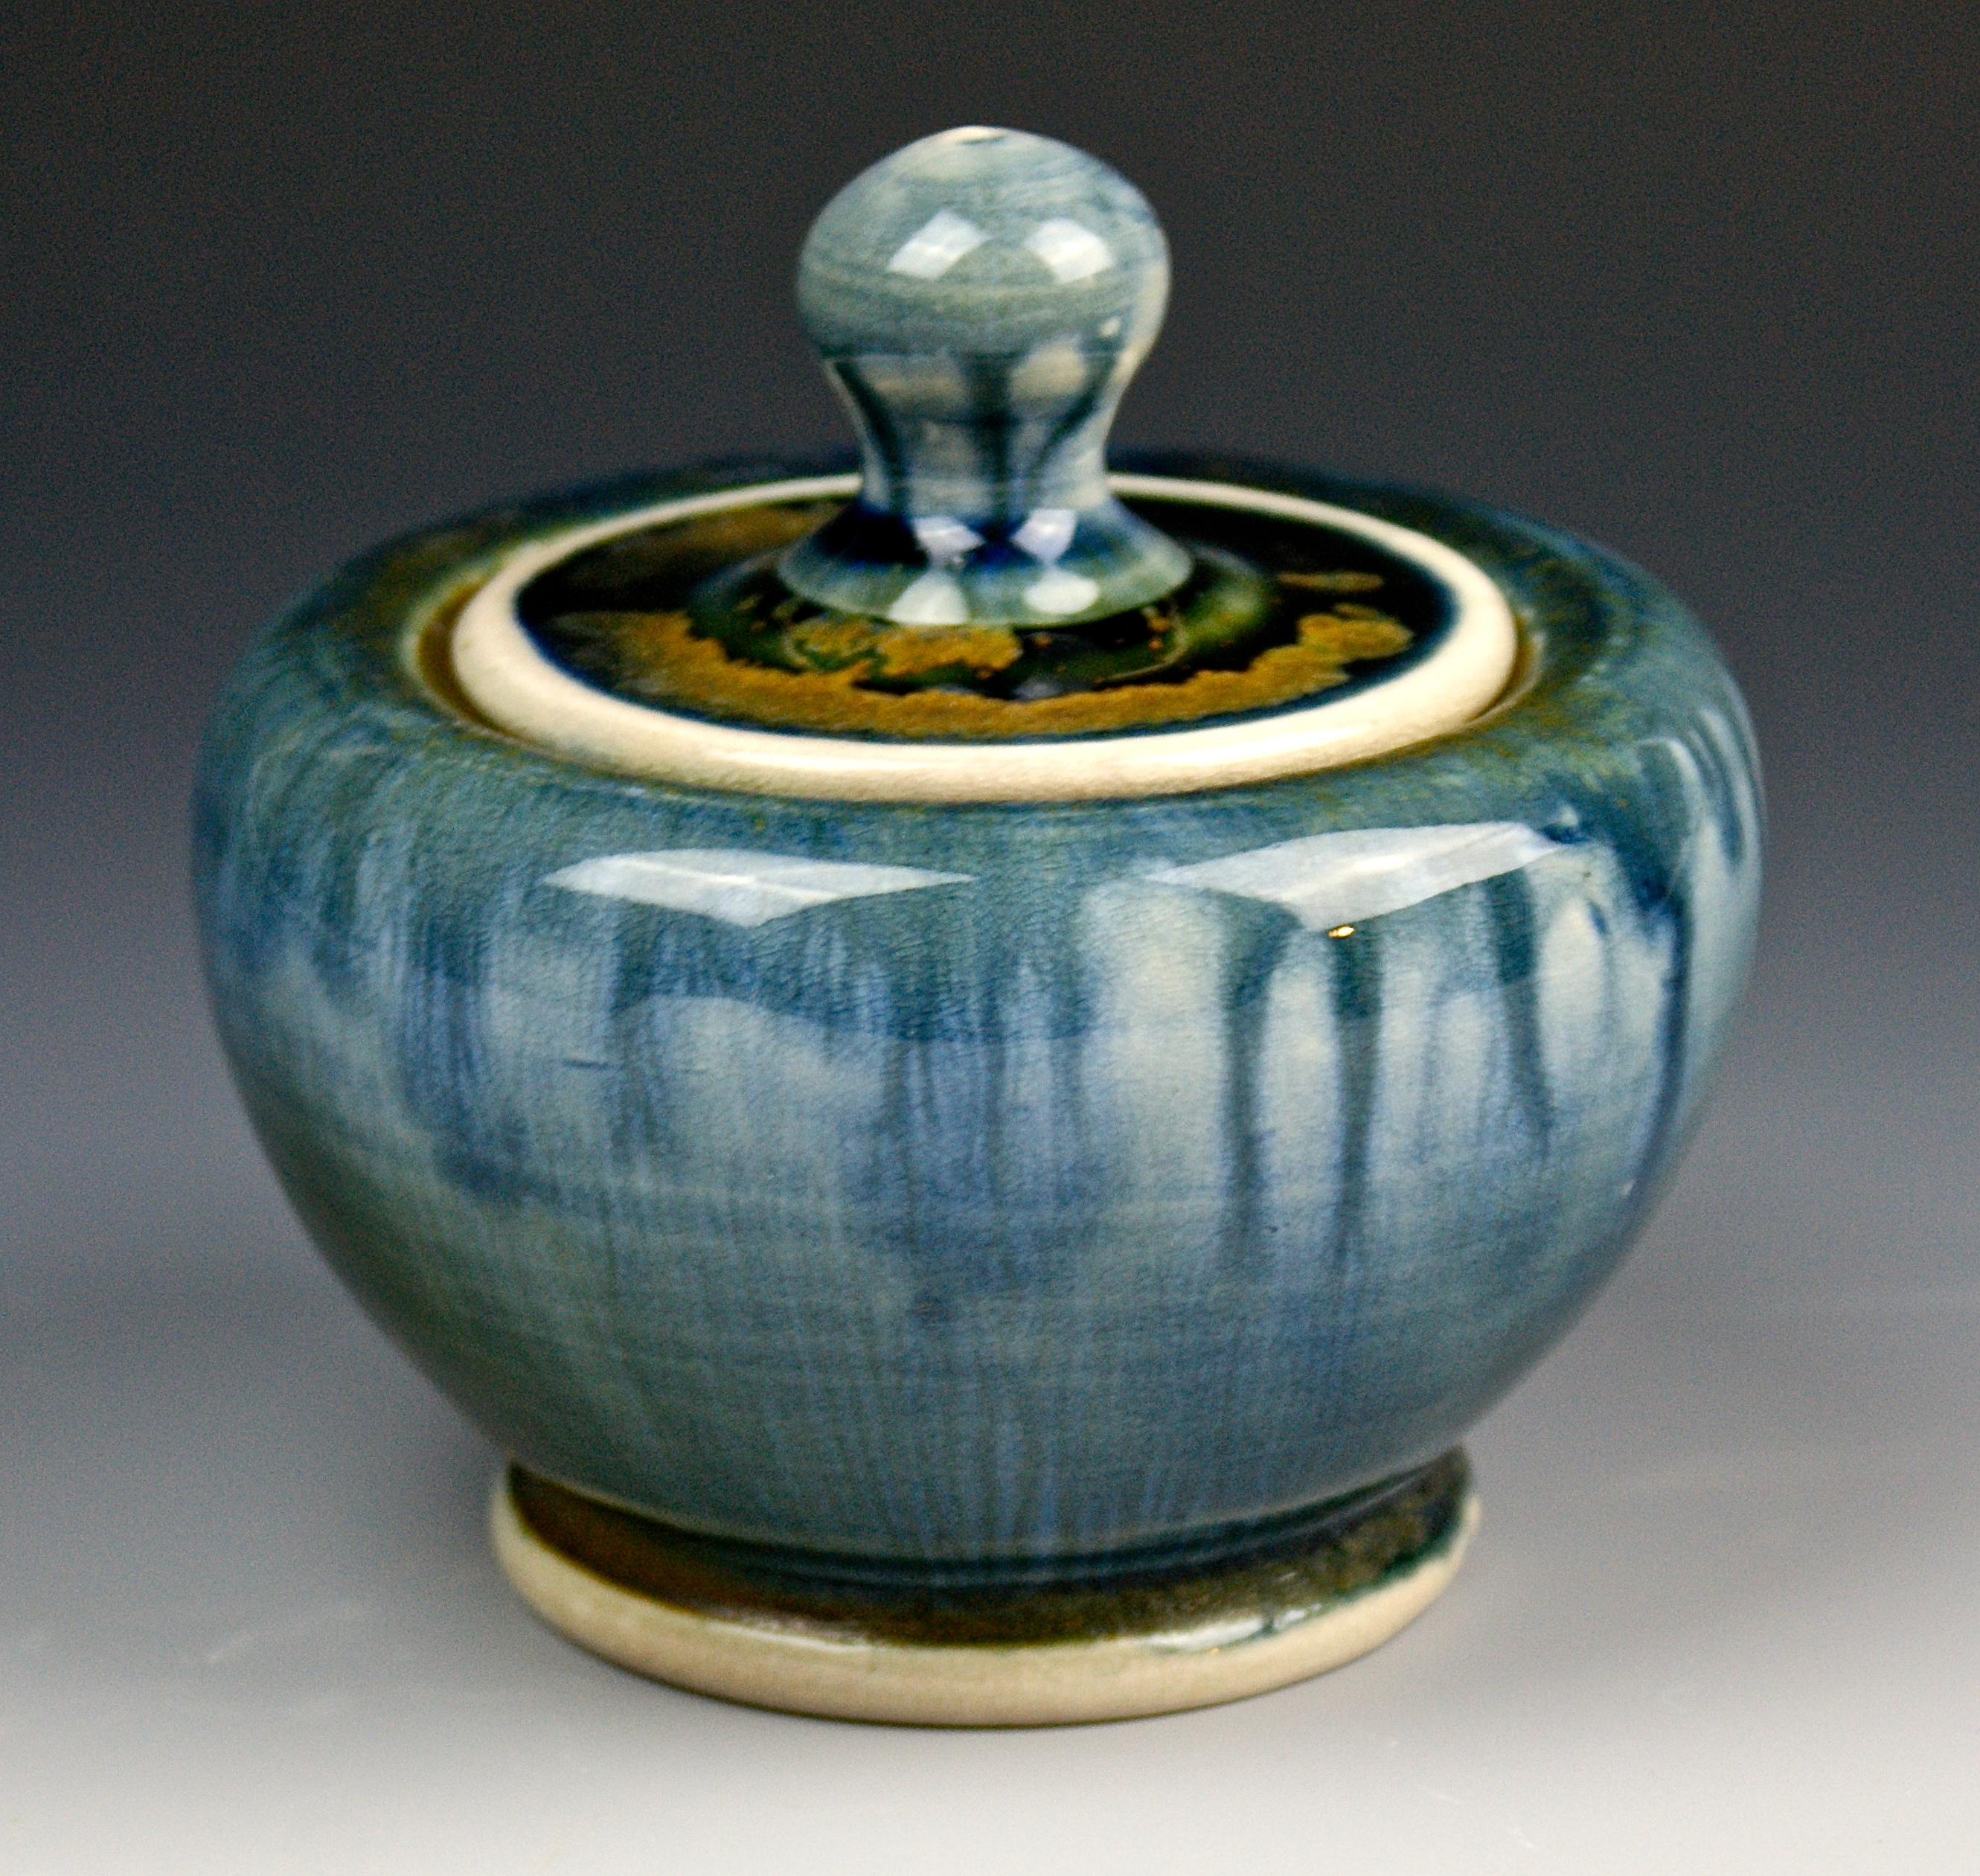 Lidded Jar  4x4x4